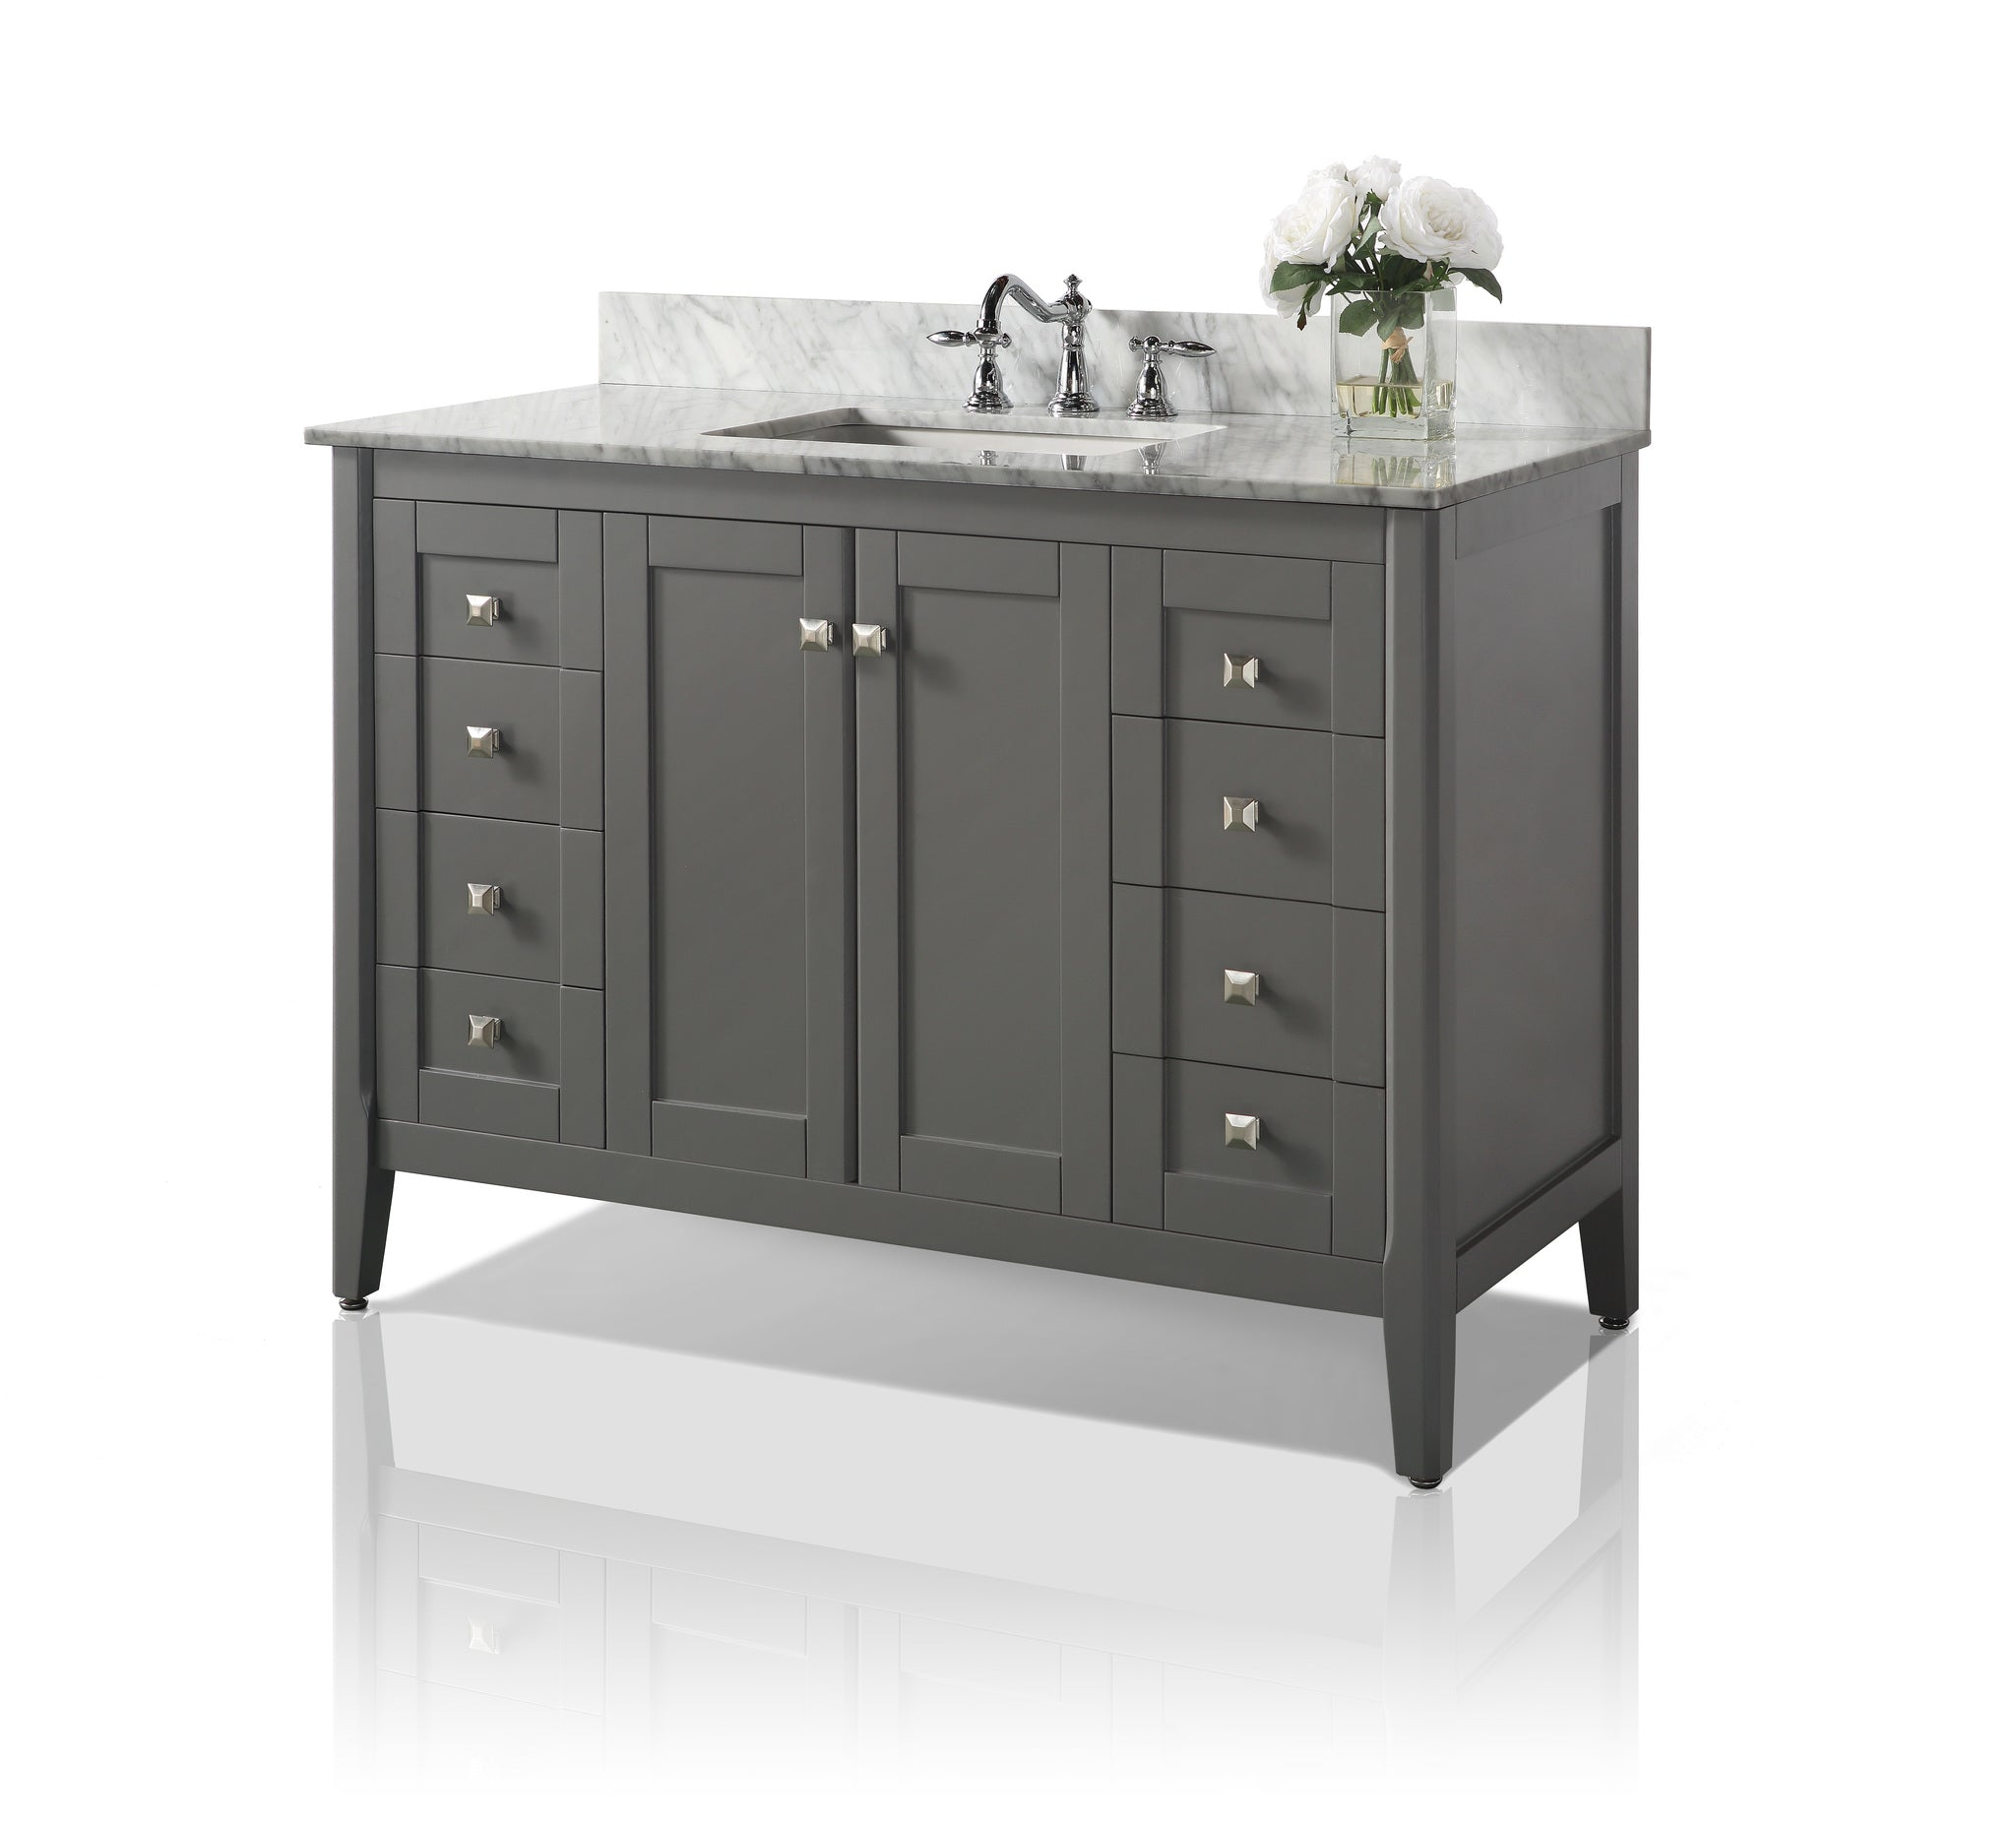 Shelton 48 in. Bath Vanity Set in Sapphire Gray with 28 in. Mirror